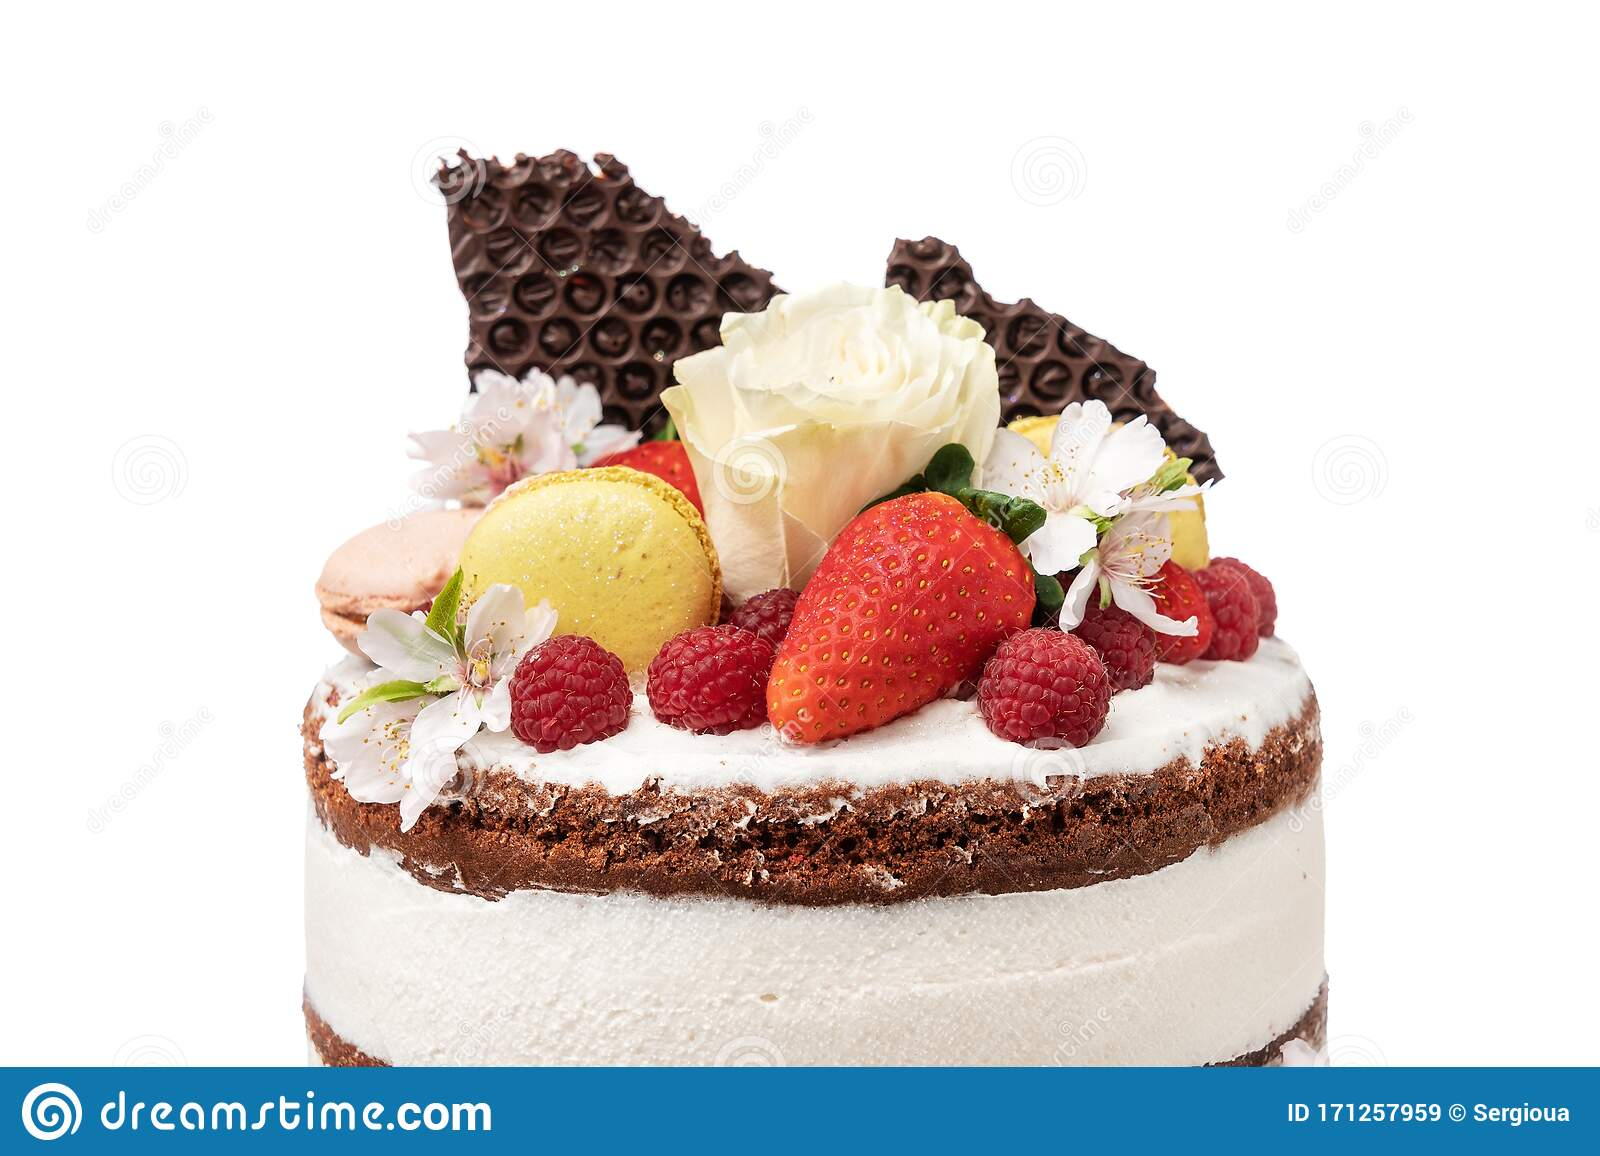 Tremendous Birthday Cake Made From Fruits And Almond Flowers Stock Image Funny Birthday Cards Online Alyptdamsfinfo